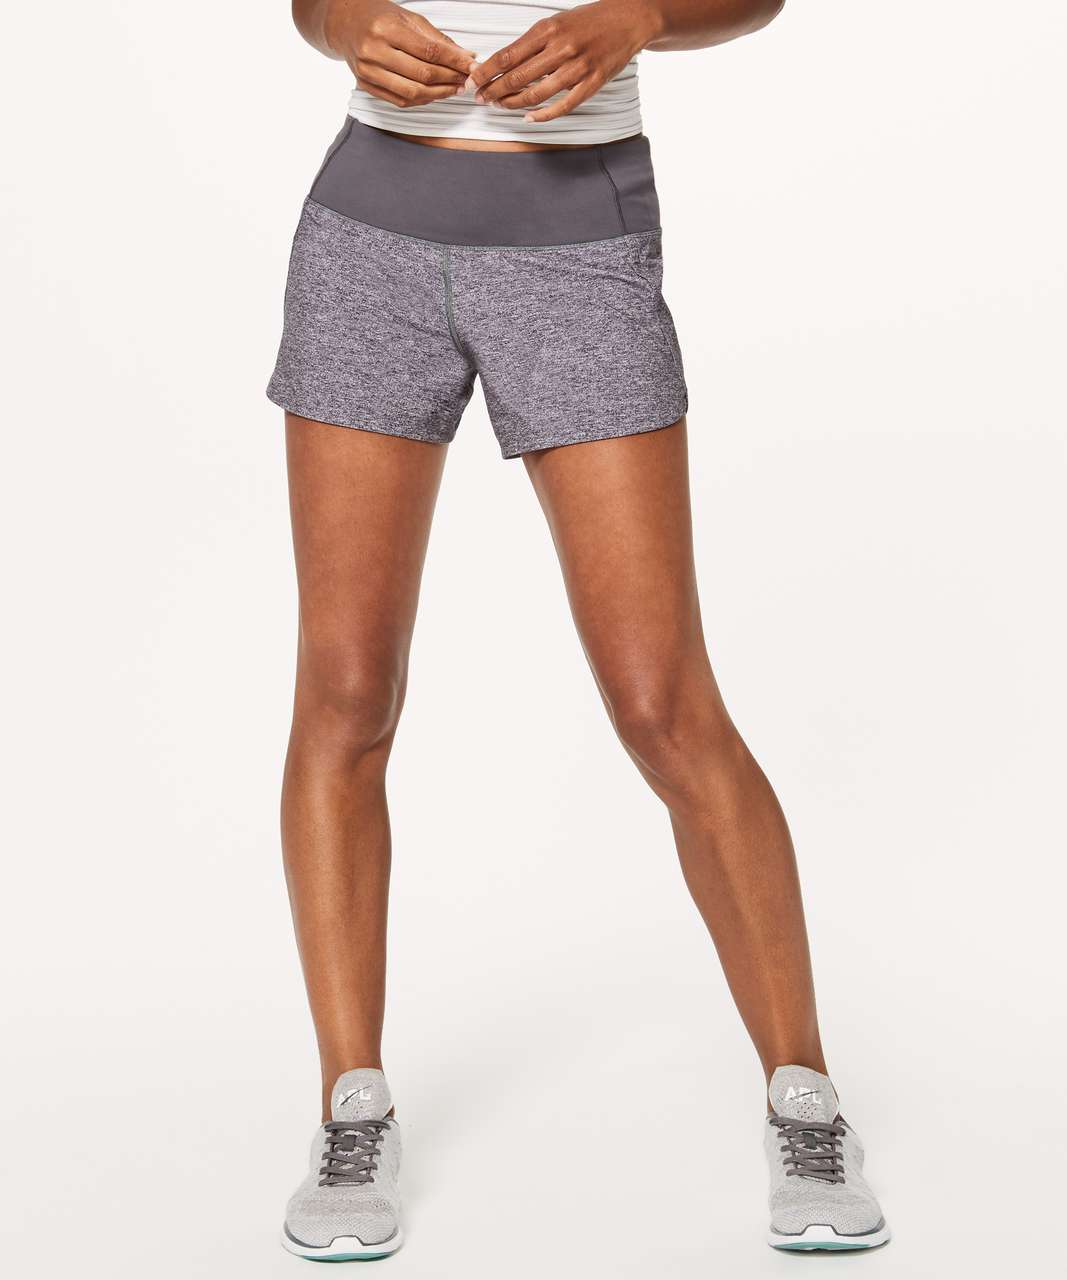 "Lululemon Run Times Short II*4"" - Heather Lux Multi Black / Dark Carbon"